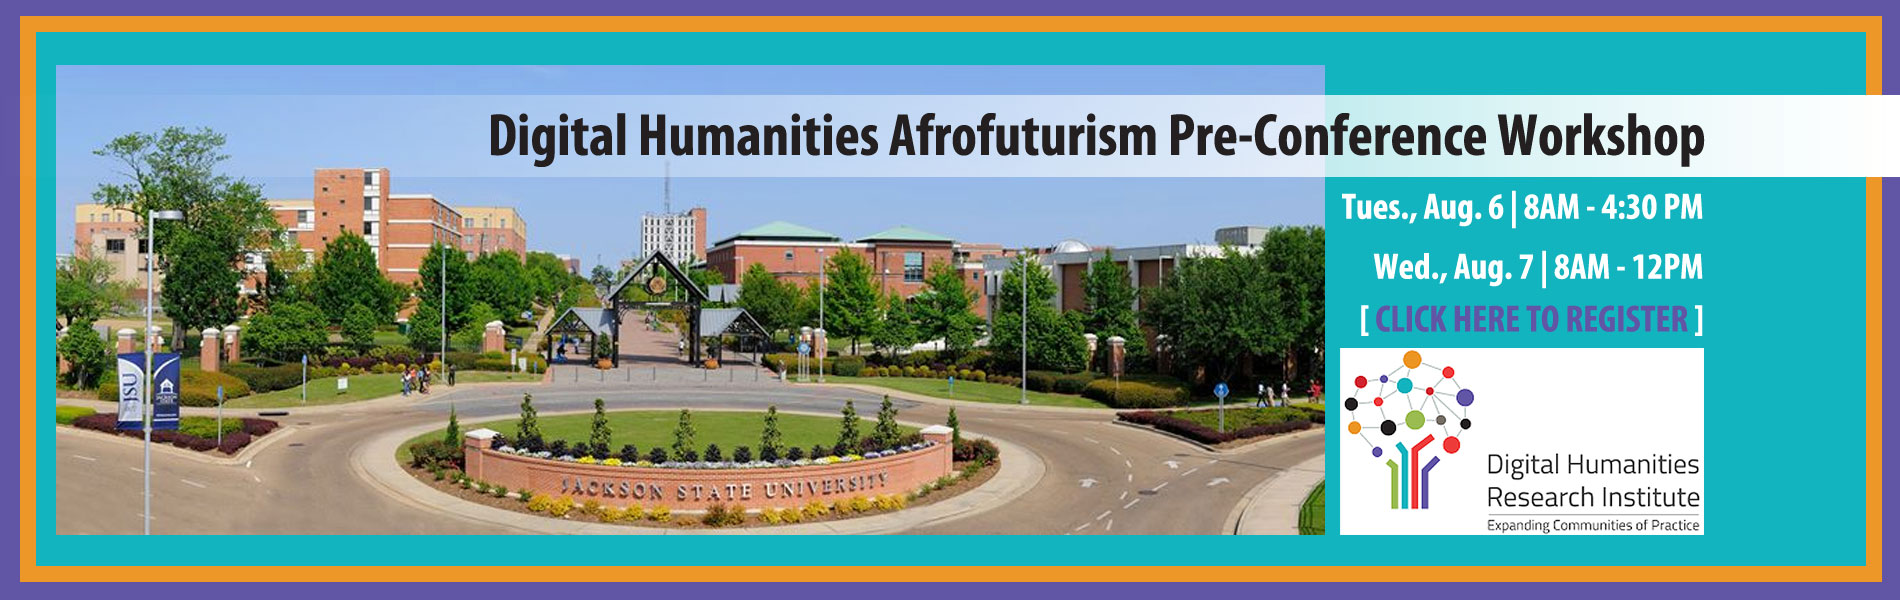 Digital Humanities Afrofuturism Pre-Conference Workshop